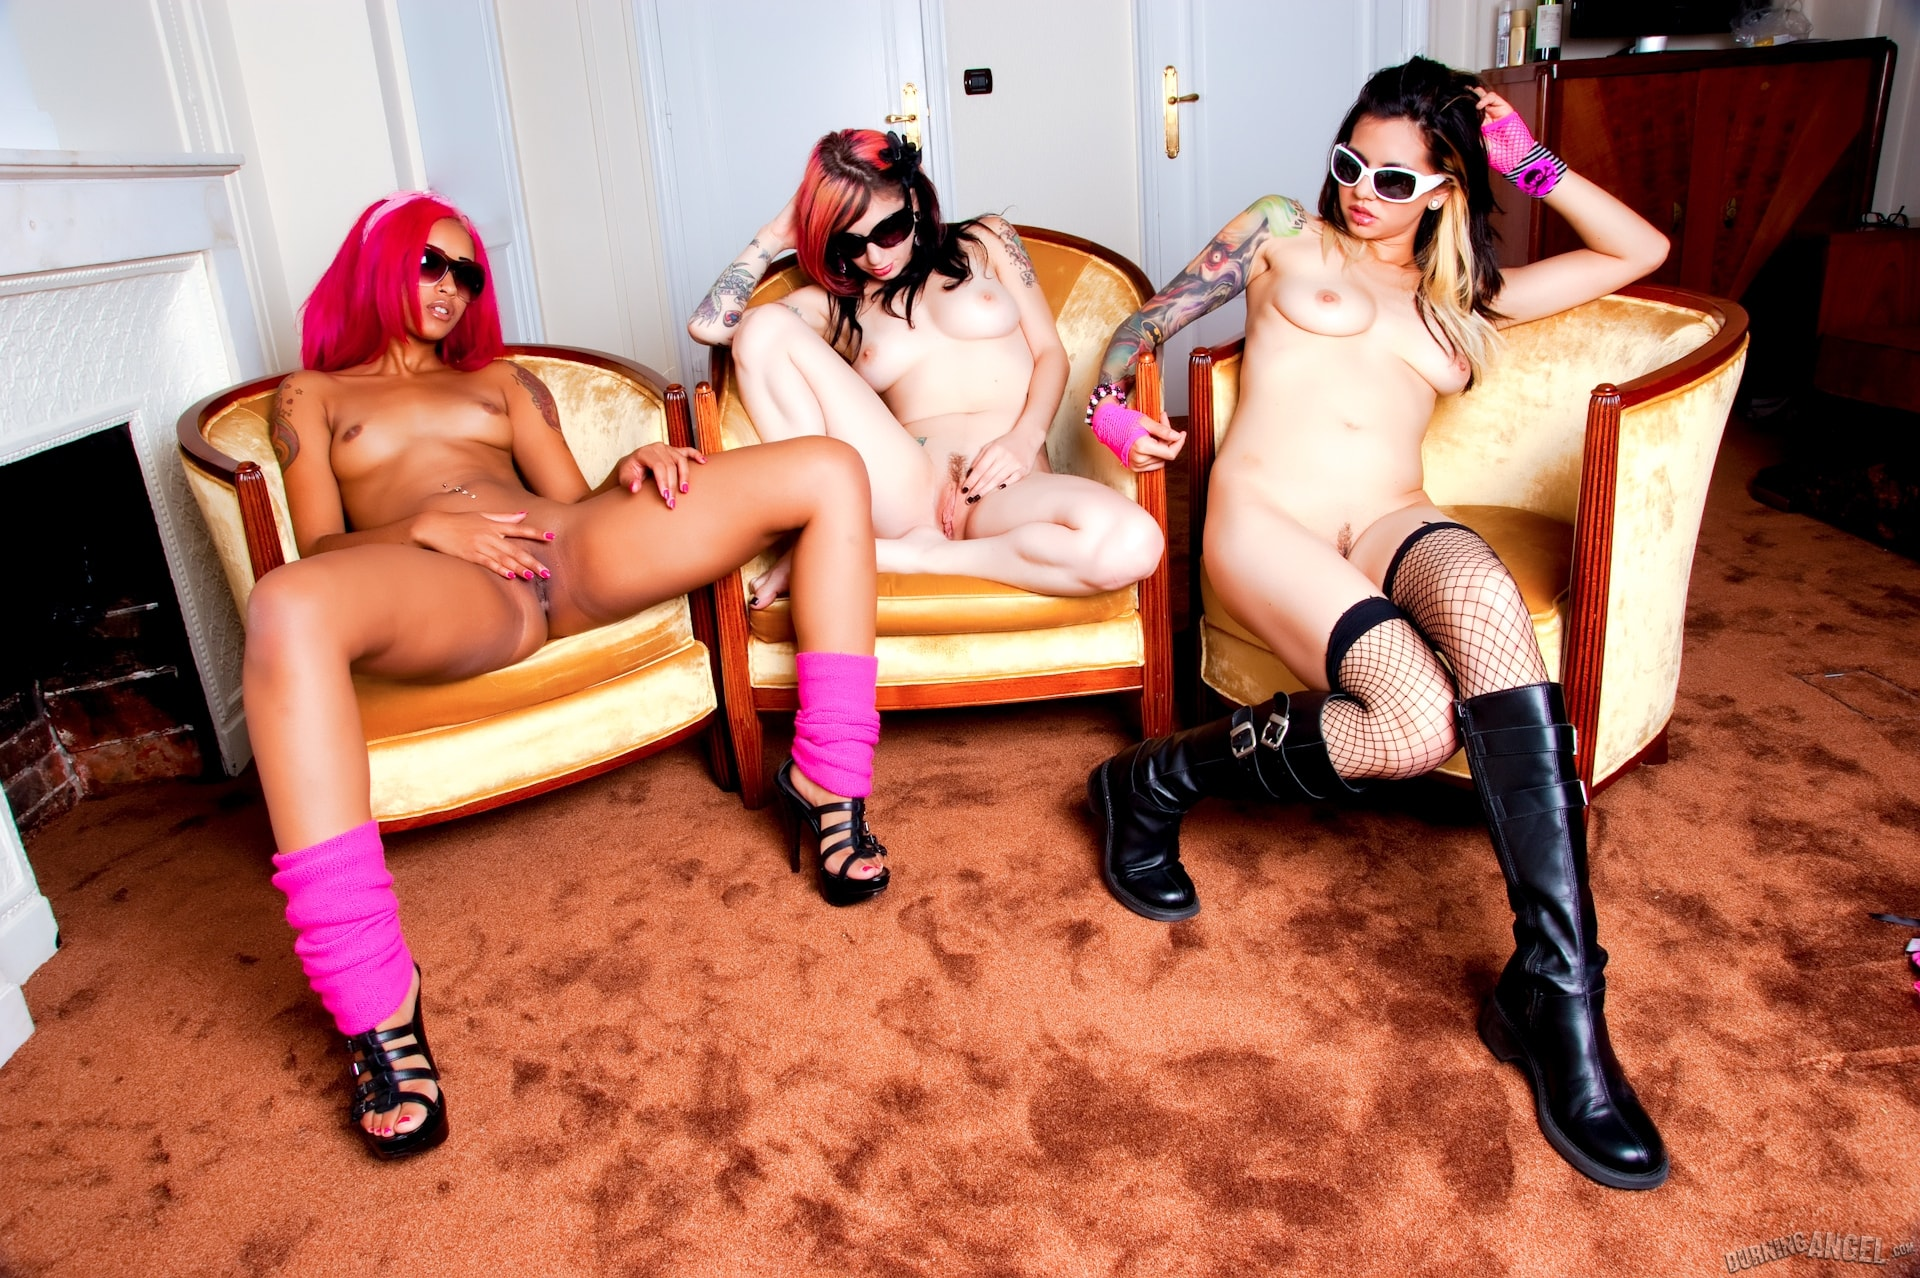 Burning Angel 'Black and Pink Sex Fest' starring Joanna Angel (Photo 15)